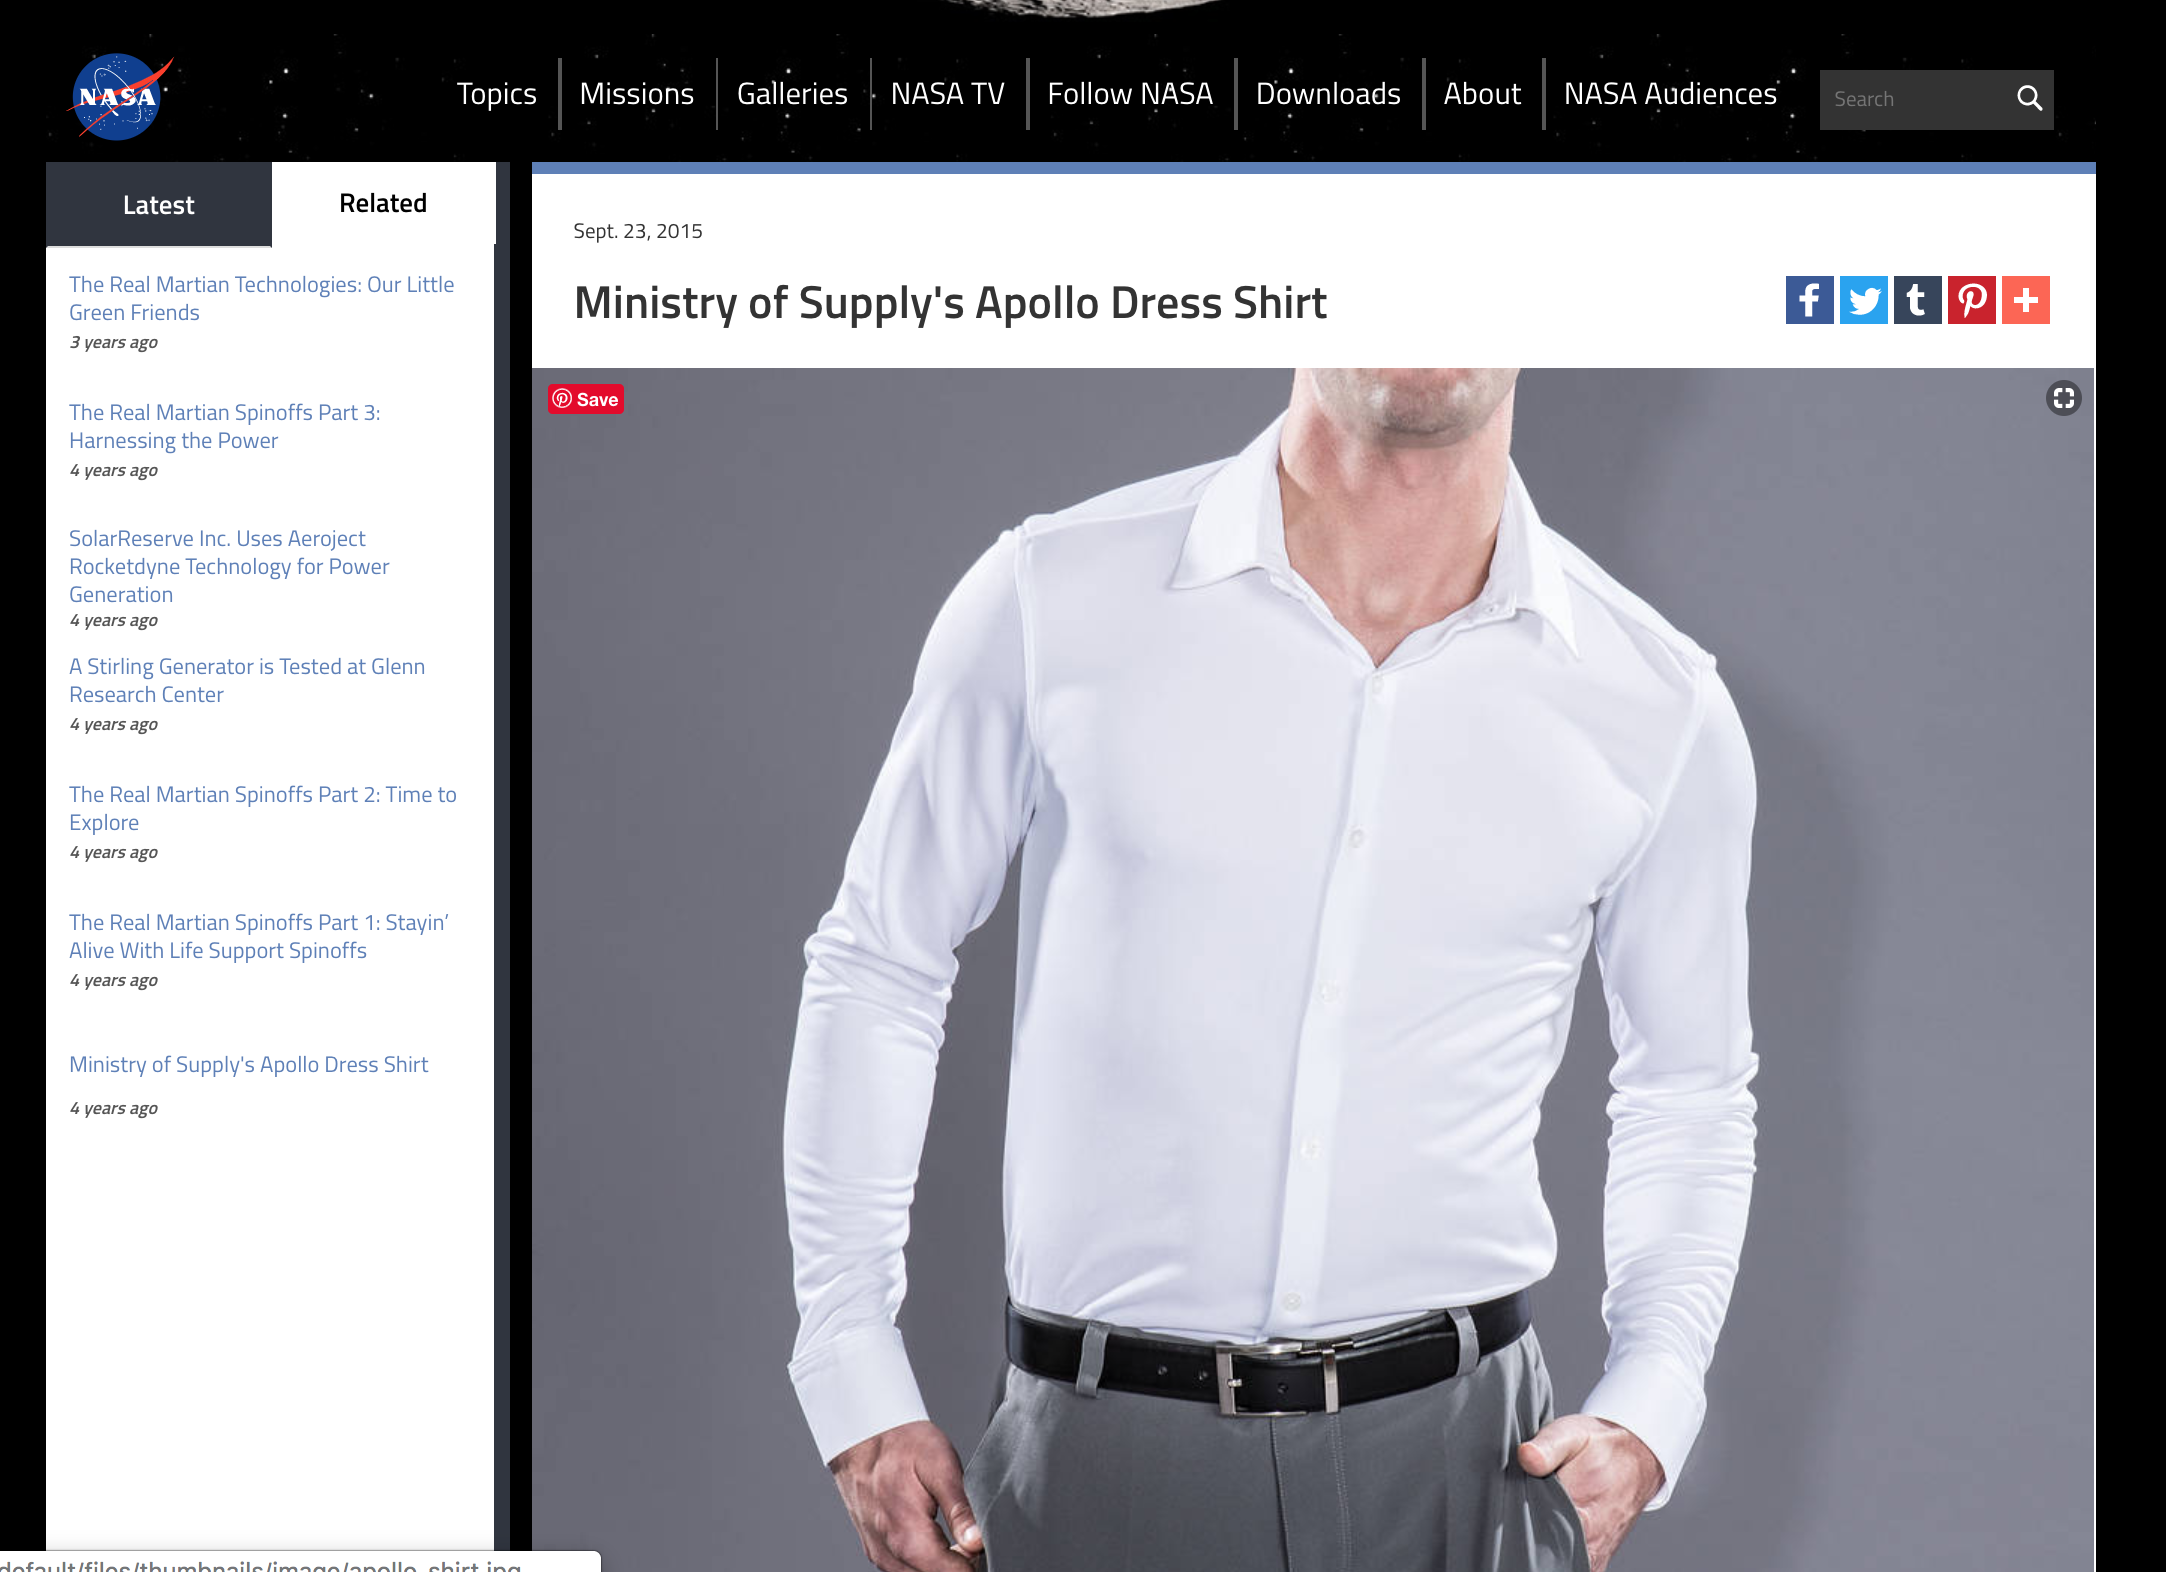 NASA's Spinoff Website discusses the use of space suit technologies, and features the Ministry of Supply Apollo Shirt. Courtesy NASA.GOV